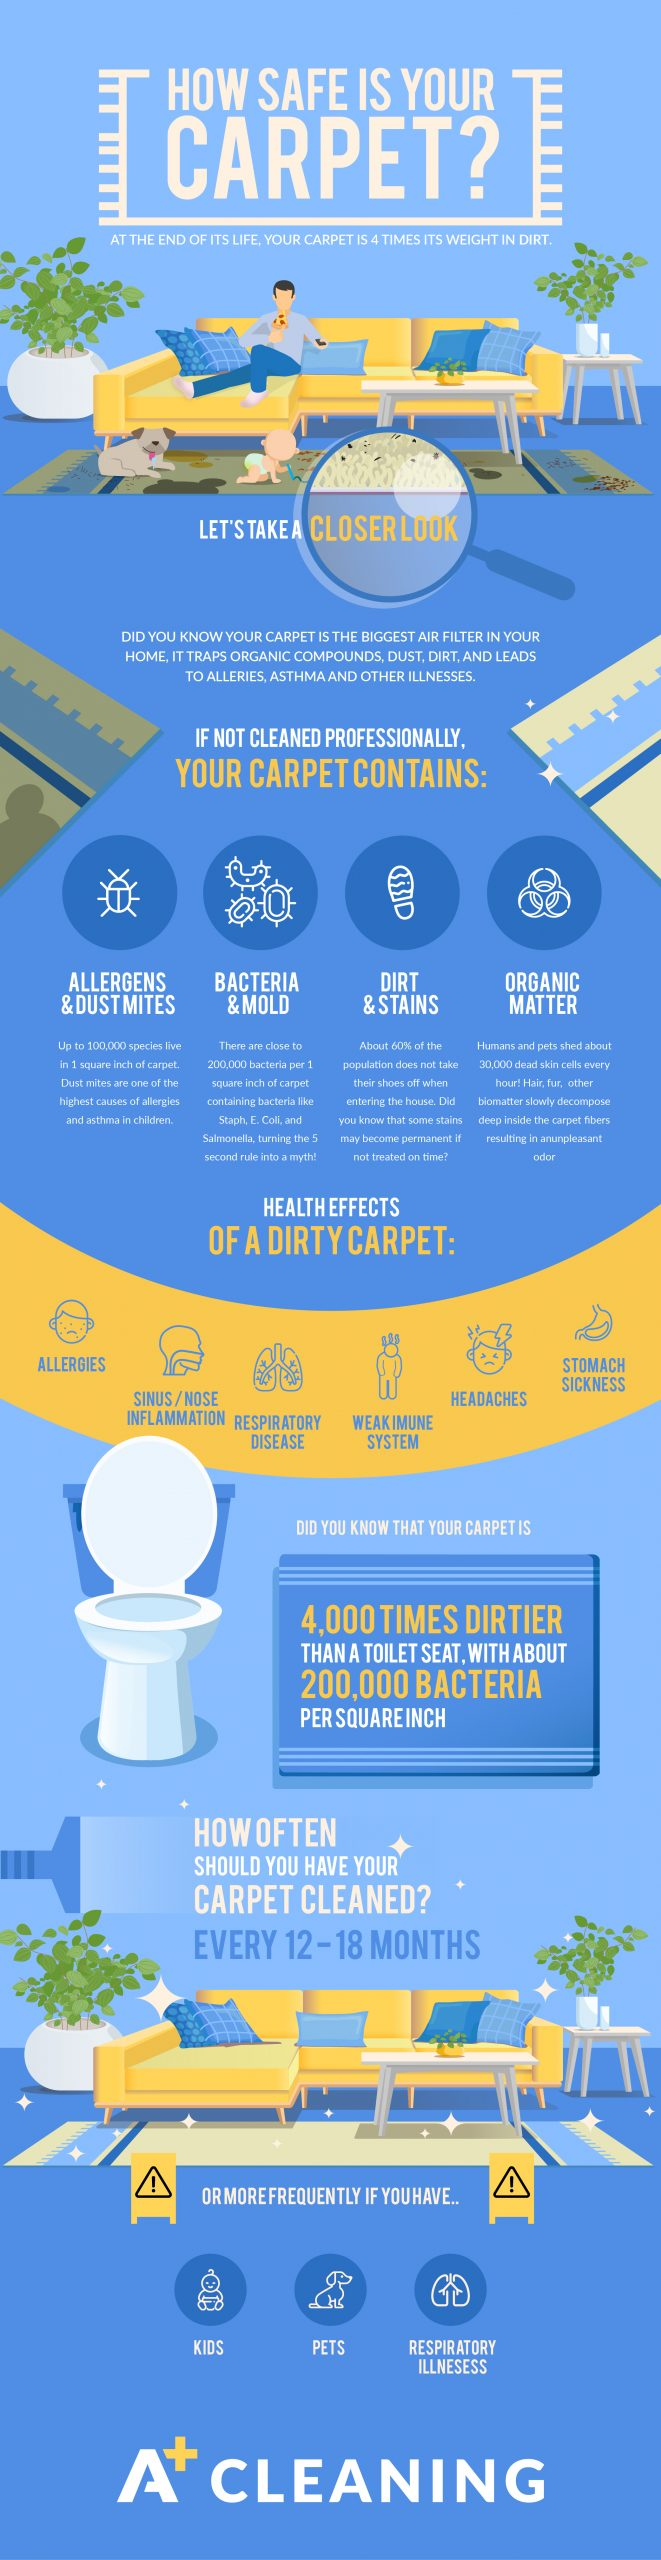 Infographic describing dangers of dirty carpets